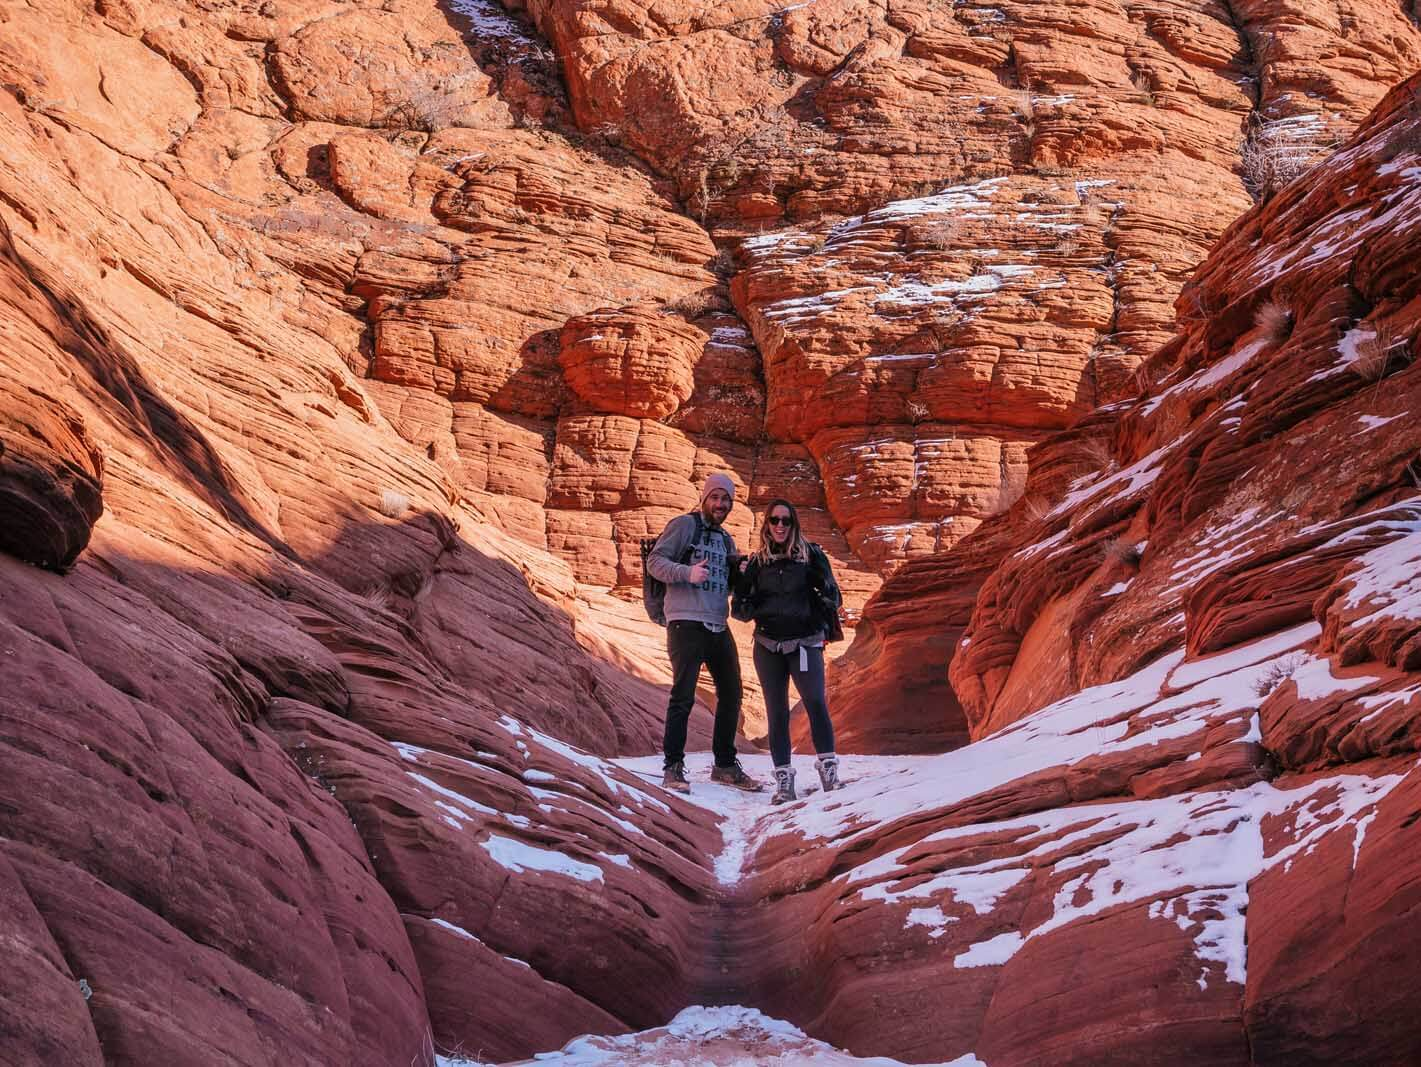 Megan and Scott taking a break from a hike in Coyote Buttes near Kanab Utah